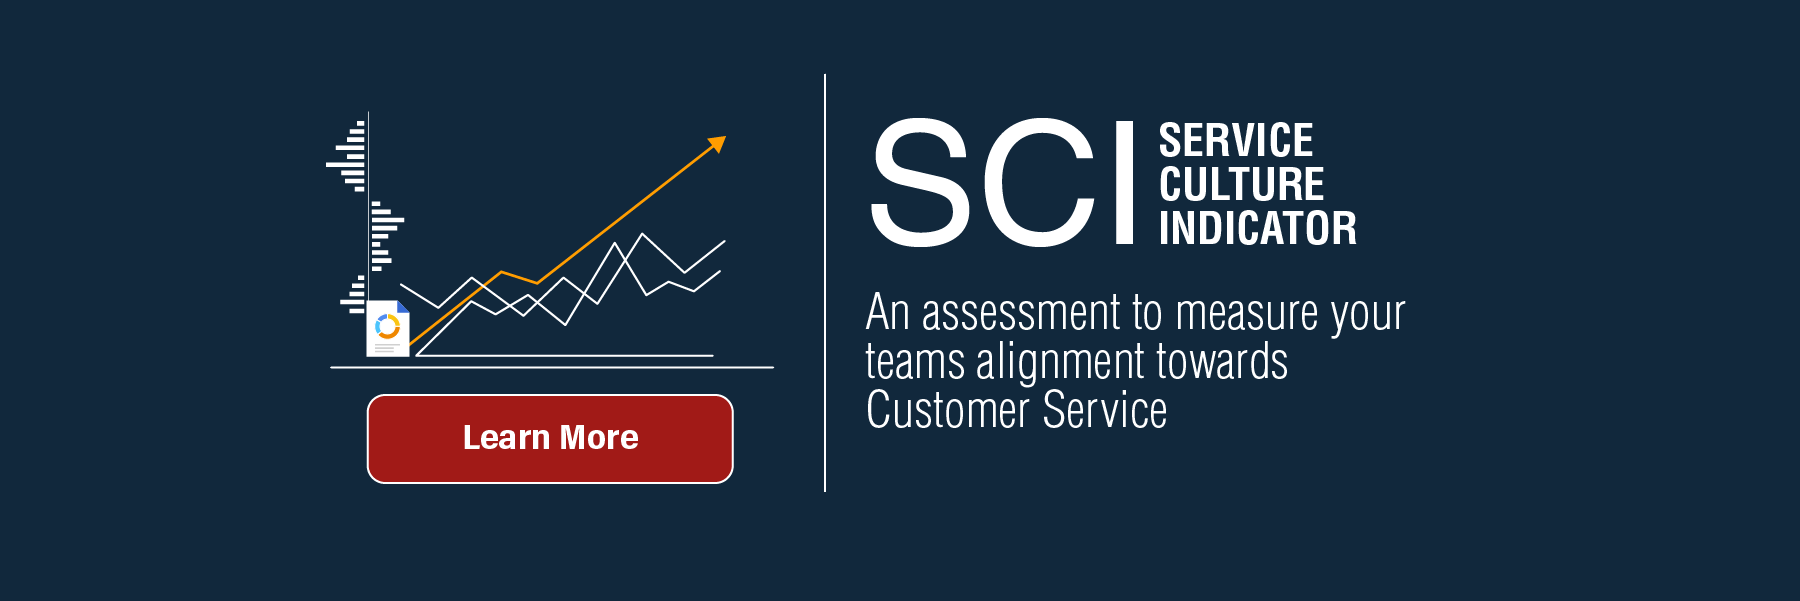 Learn more about Service Culture Indicator assessment